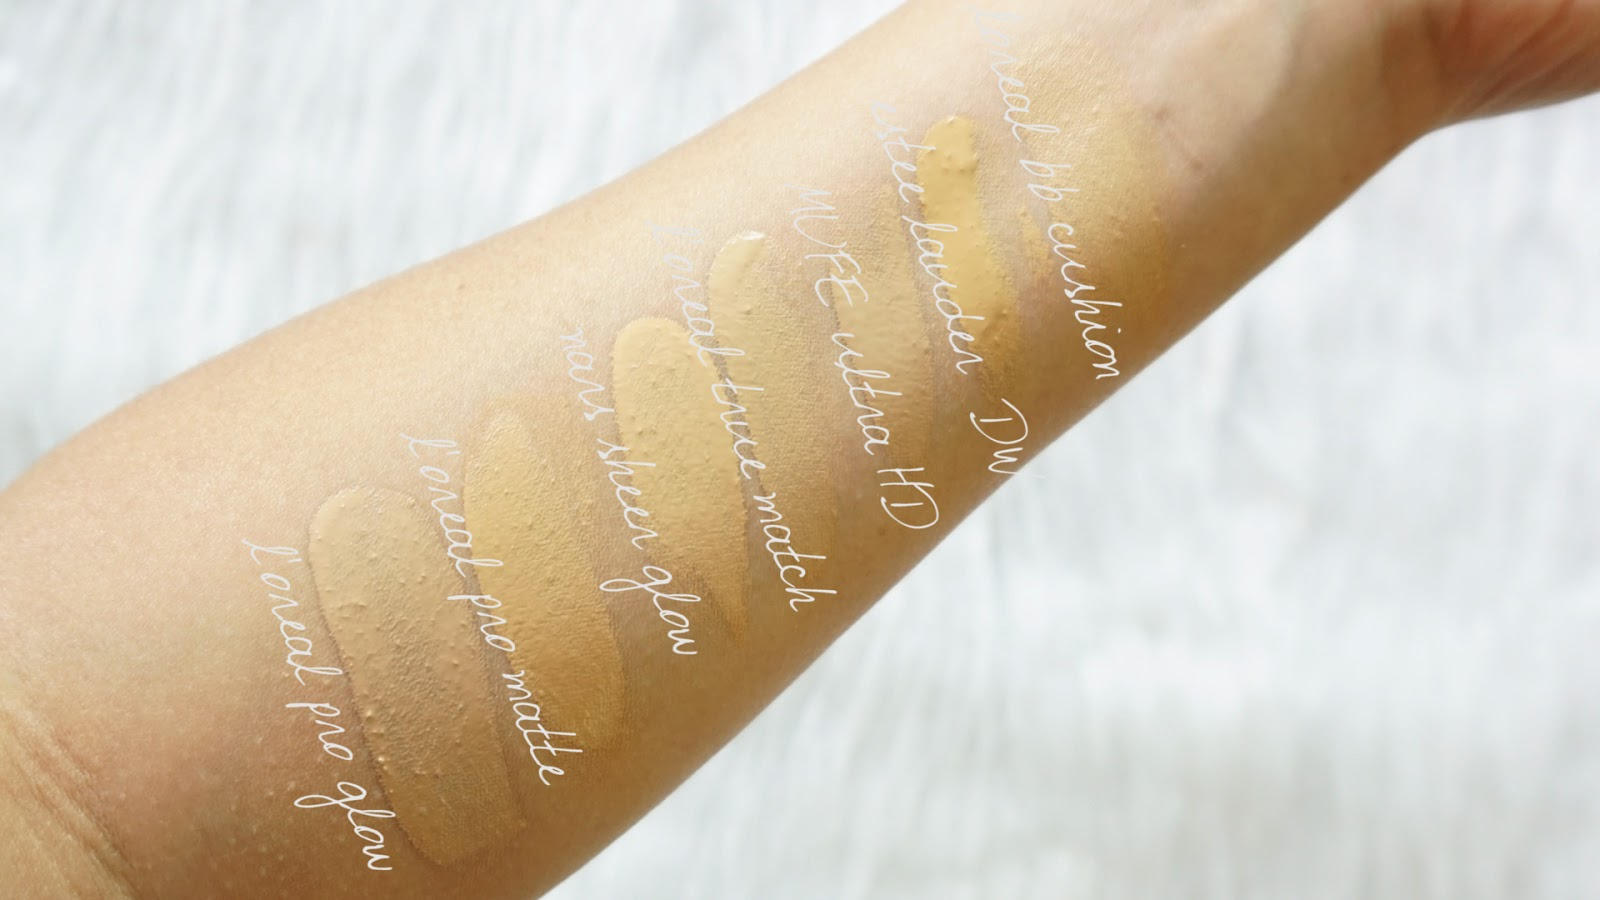 Loreal Infallible Pro Glow Foundation Review Brunette And Bright Matte 24hr I Wanted To Share Some Of My Favorite Shades With You For A Color Comparison Isnt It Funny How There Are Subtle Variations In But